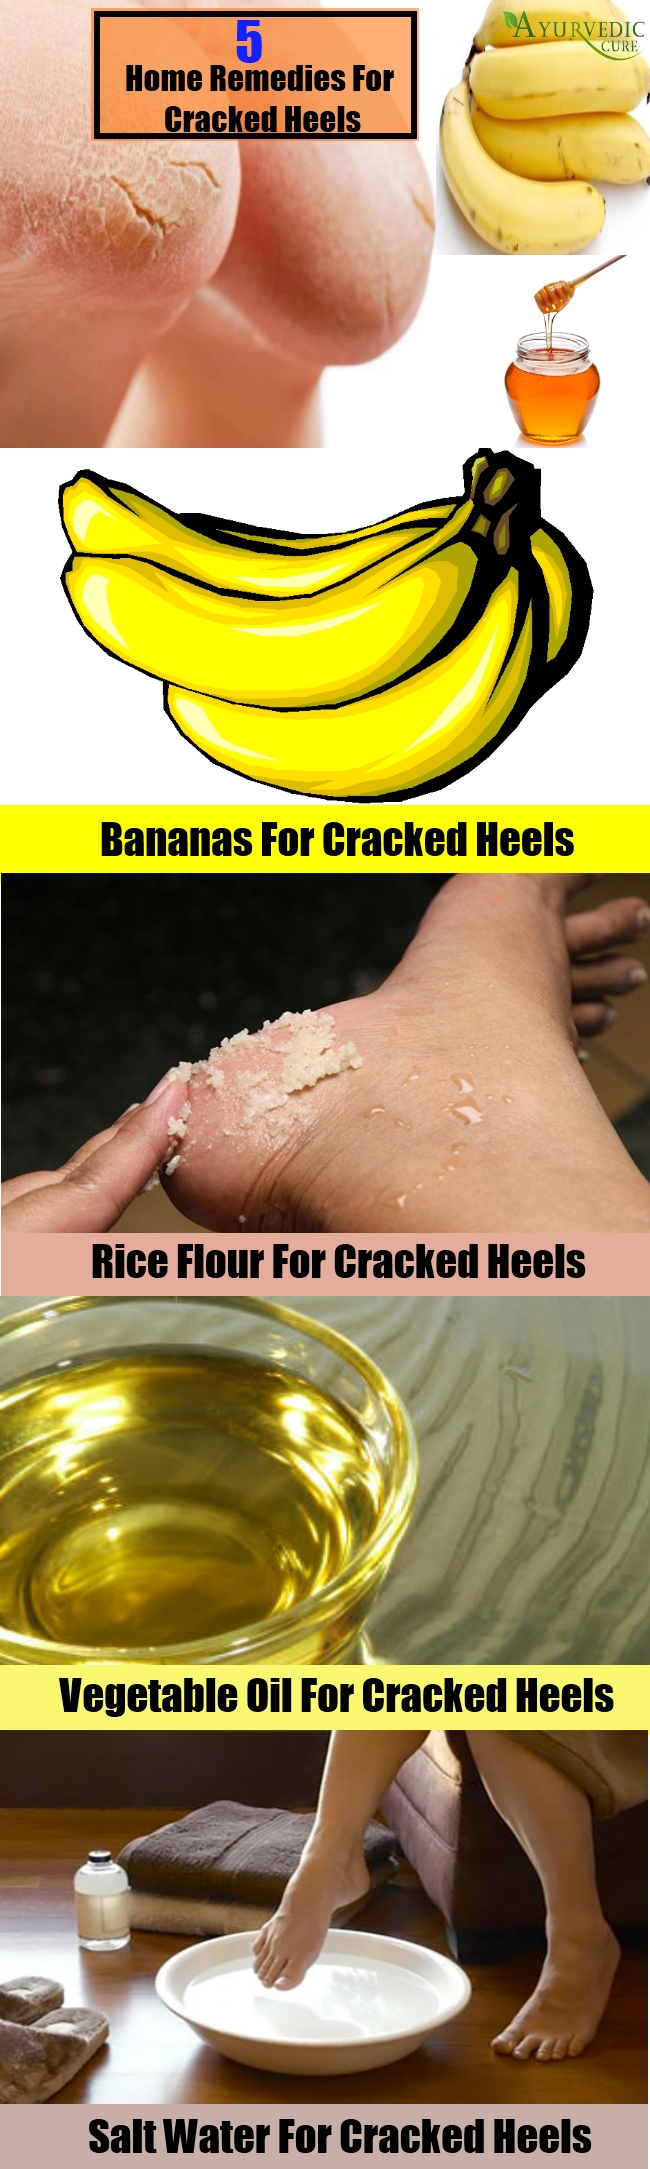 5 Best Home Remedies For Cracked Heels